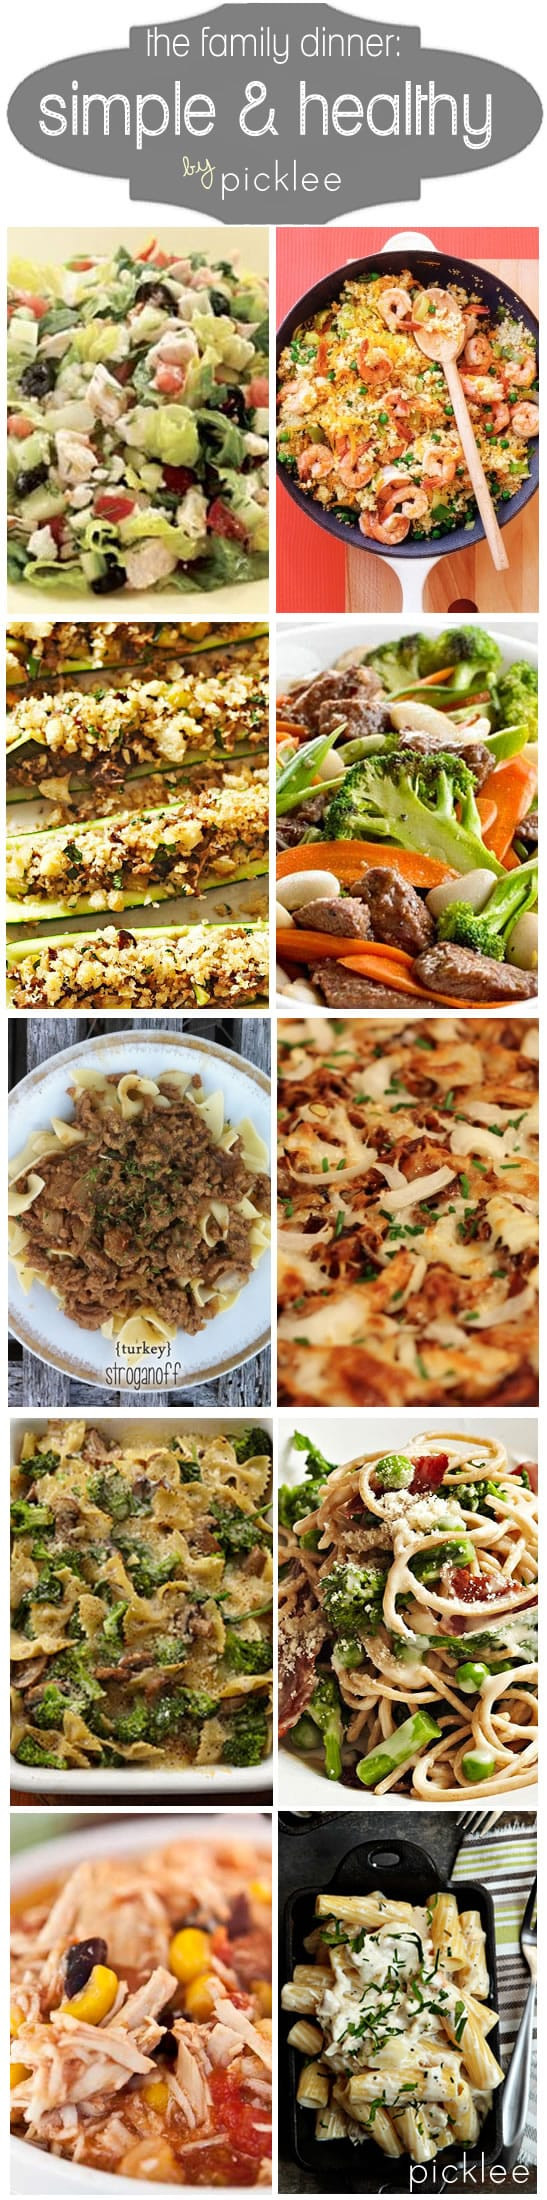 Fast Healthy Dinners For Family  10 Simple & Healthy Weeknight Dinners [recipes] Picklee